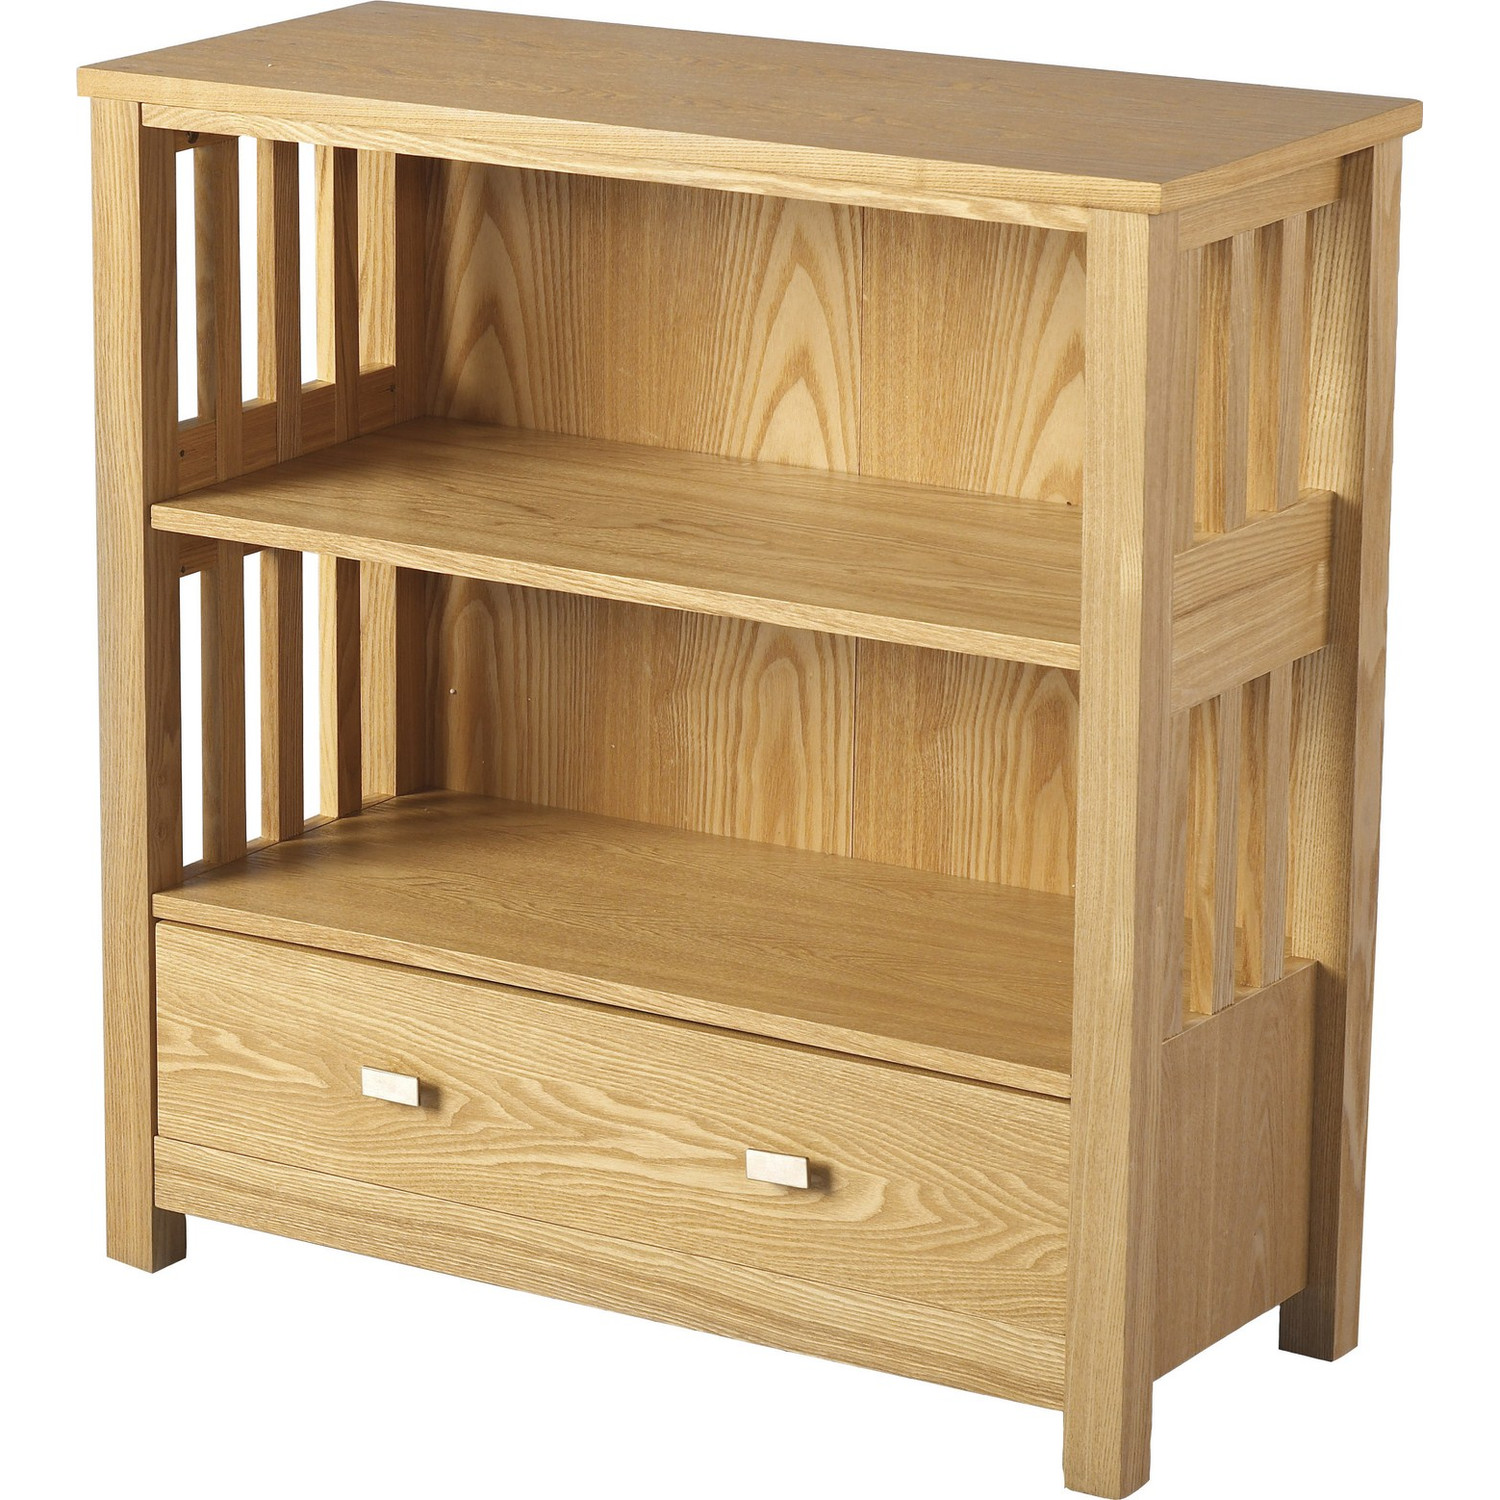 Top Short Bookcase